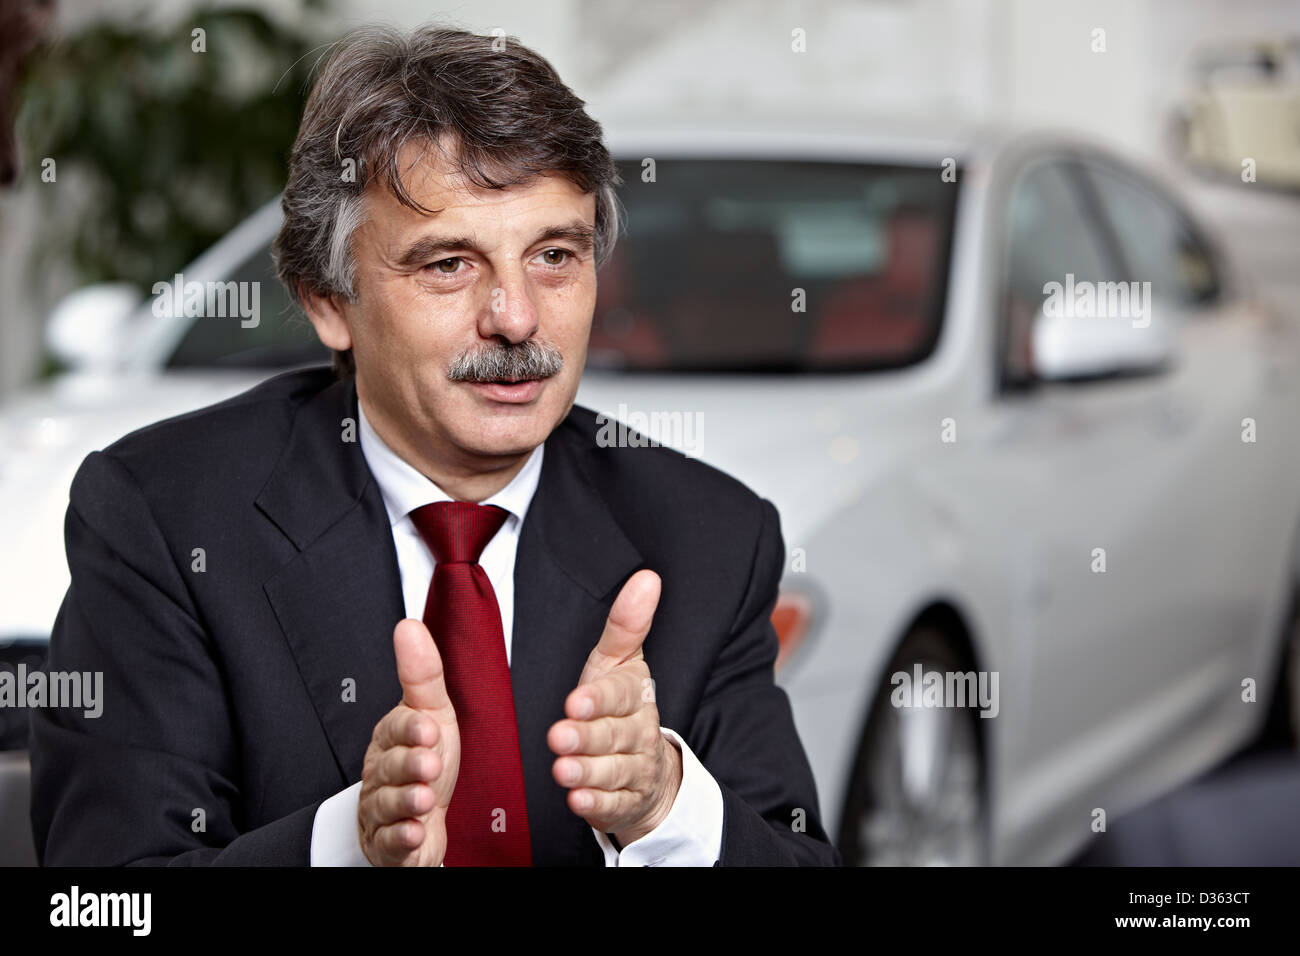 Ralf Speth Ceo Jaguar Land Rover Pictured At The Jaguar